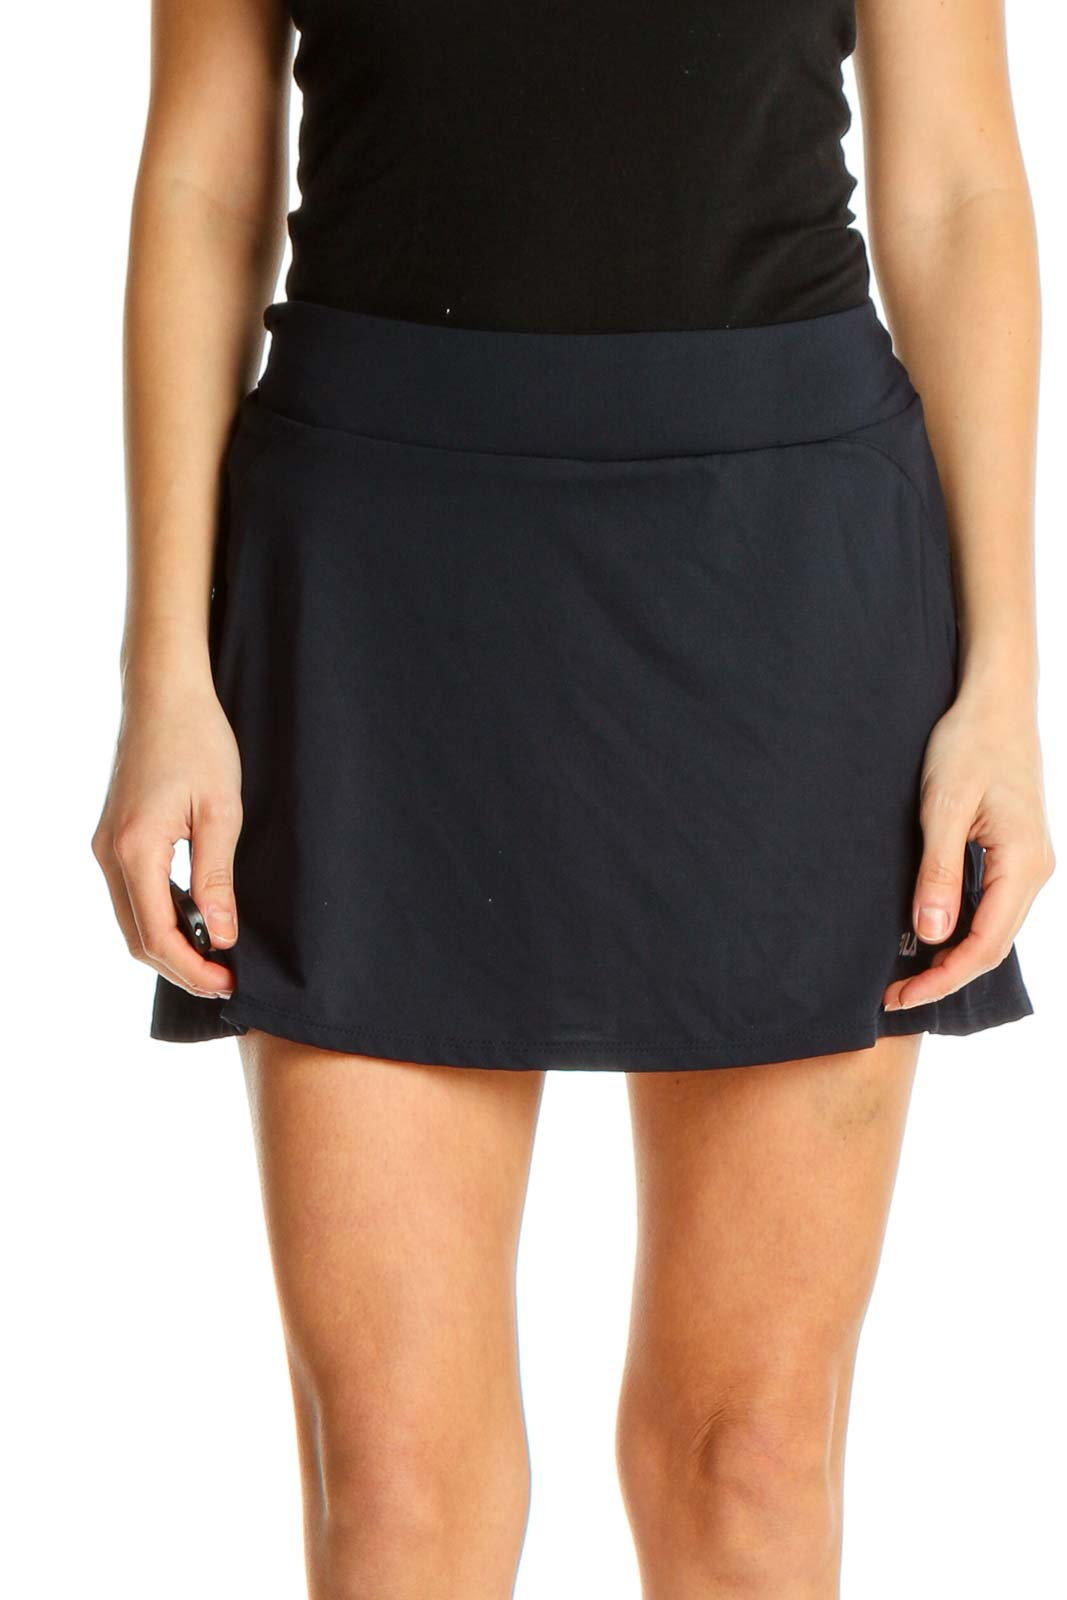 Blue Solid Activewear A-Line Skirt Front